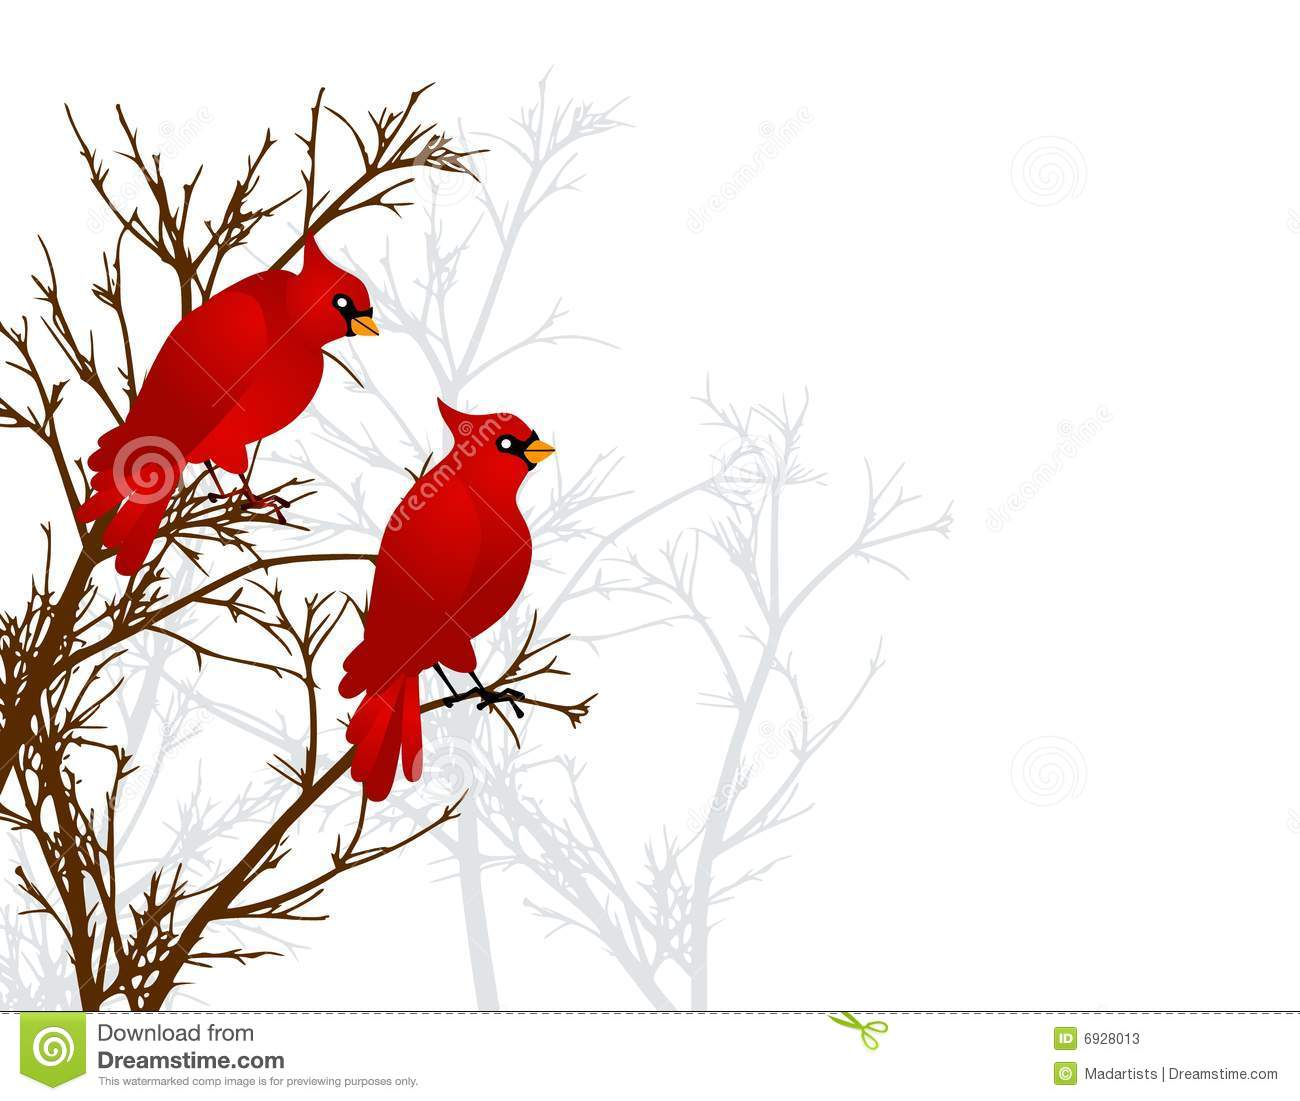 ... illustration of 2 red cardinal birds sitting on a branch in winter